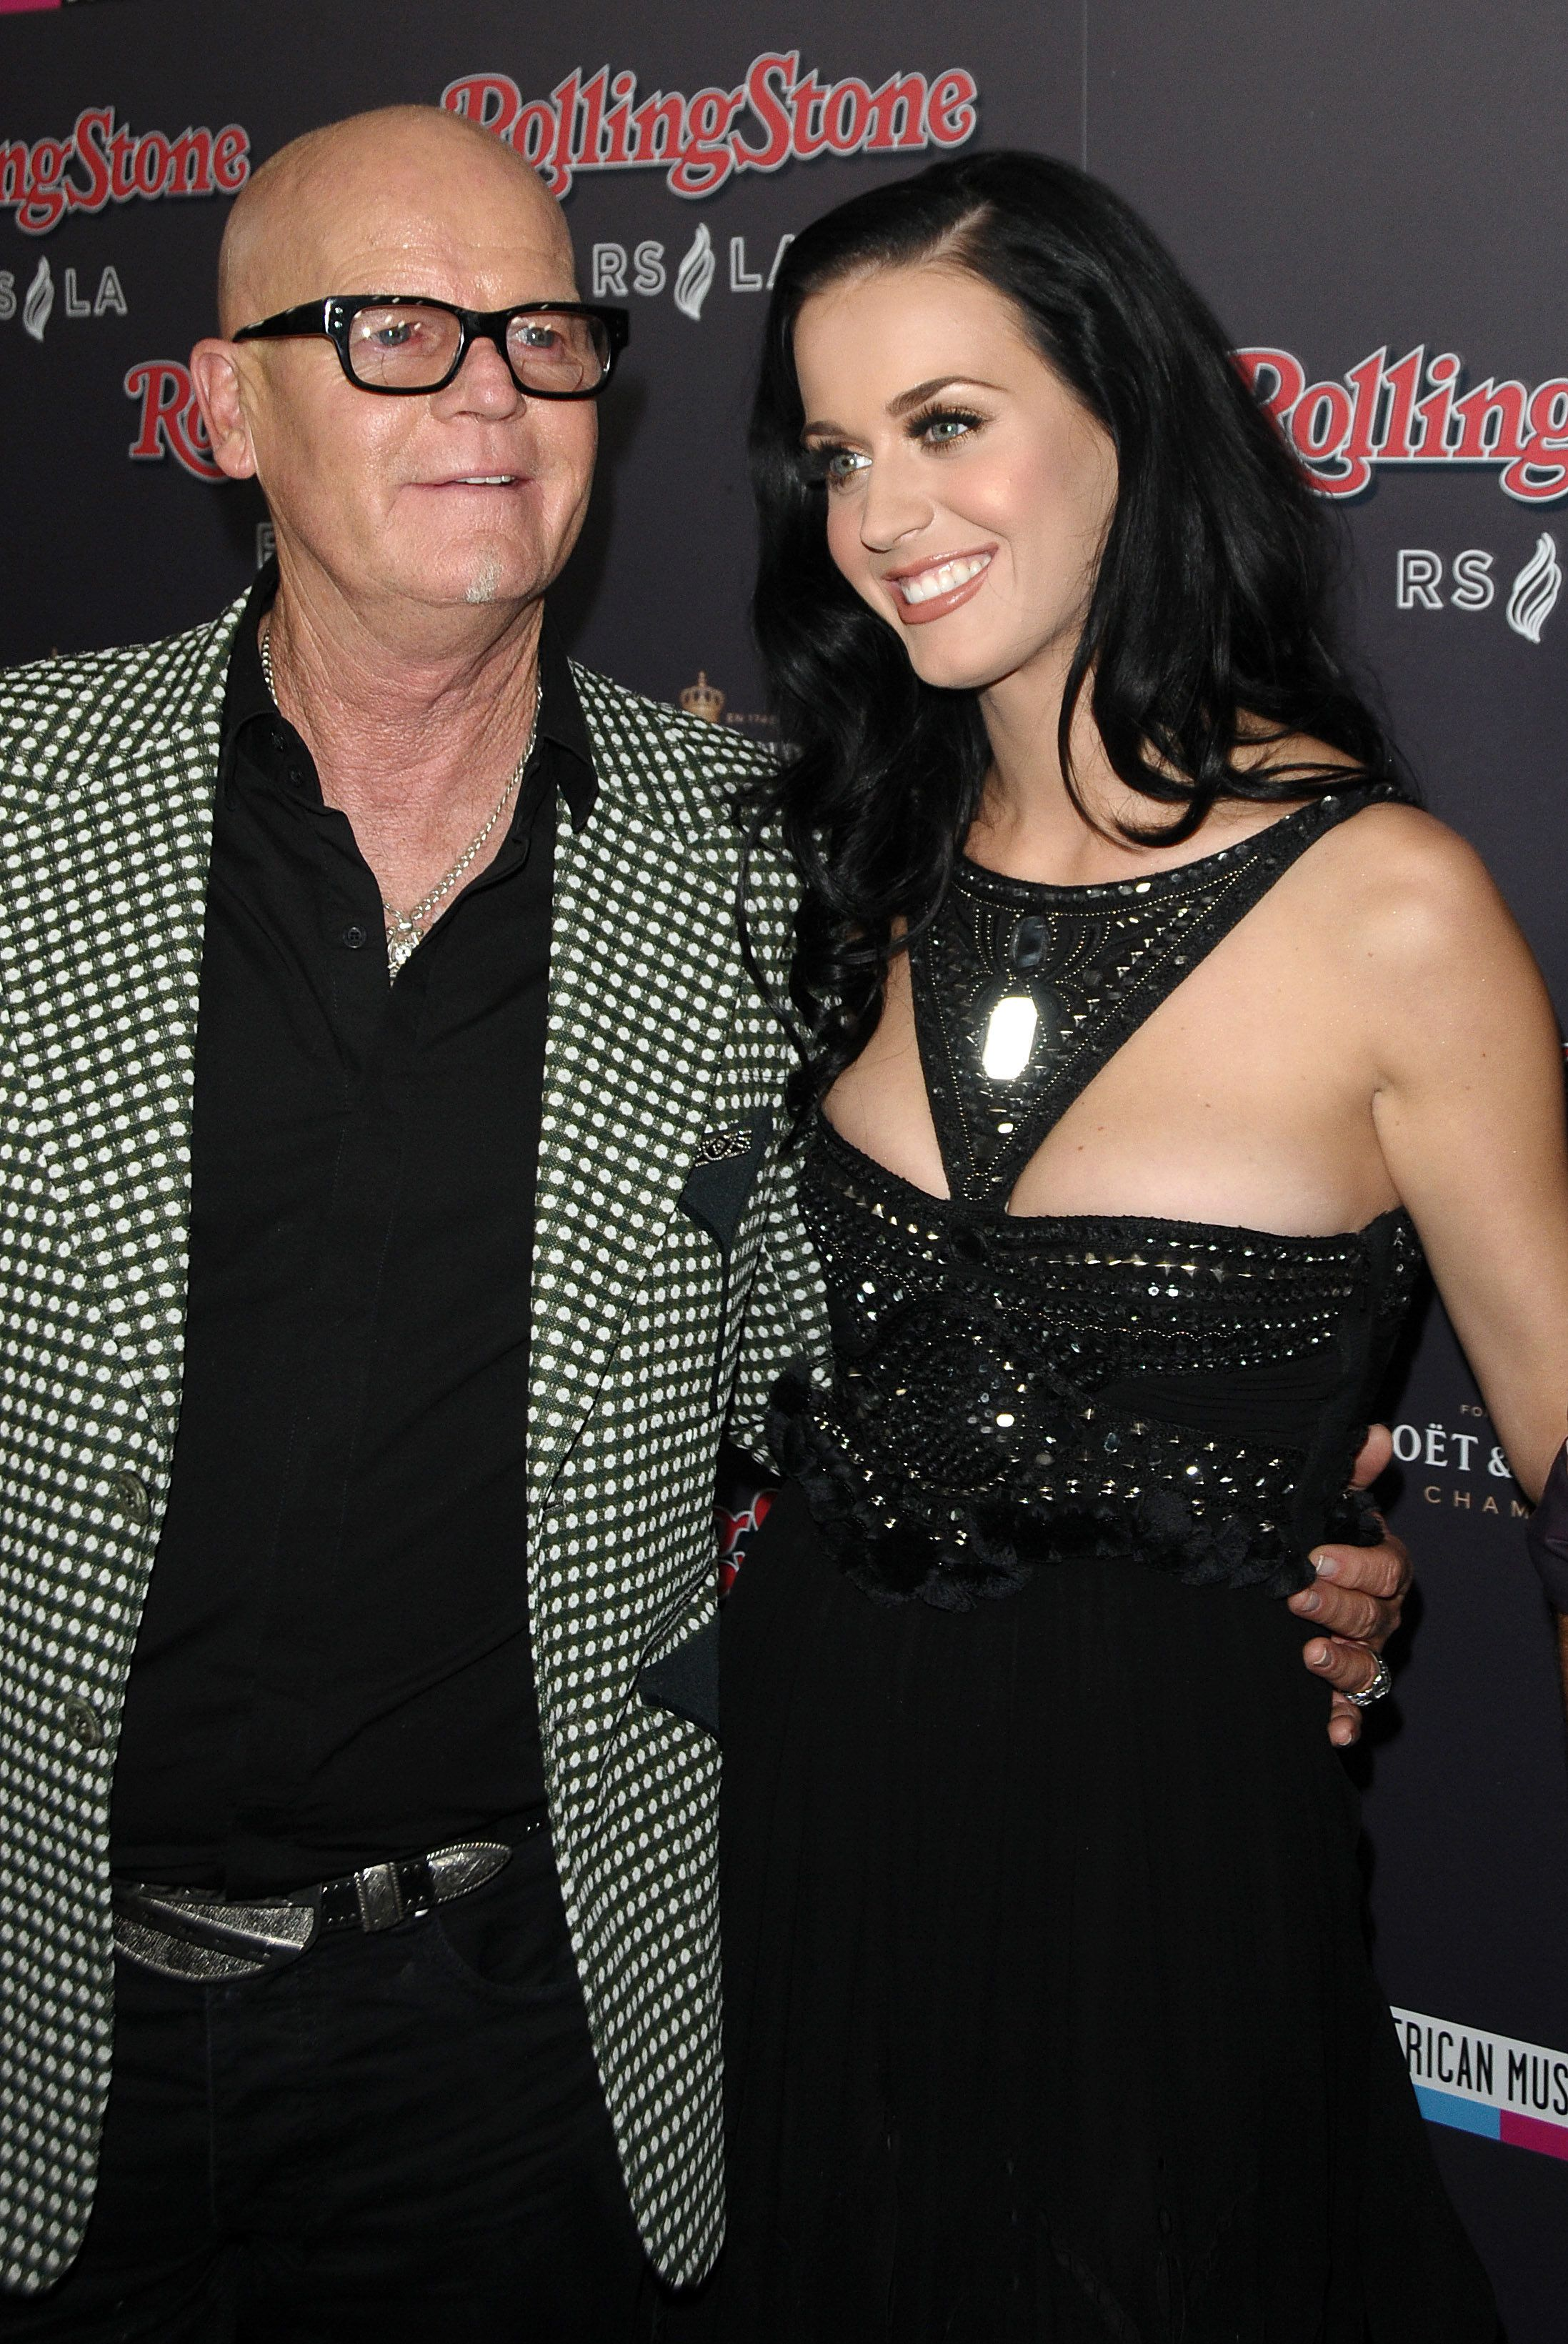 Katy Perry and her father pastor Keith Hudson attend the Rolling Stone after party for the 2010 American Music Awards at Rolling Stone Restaurant & Lounge on November 21, 2010 in Los Angeles, California.